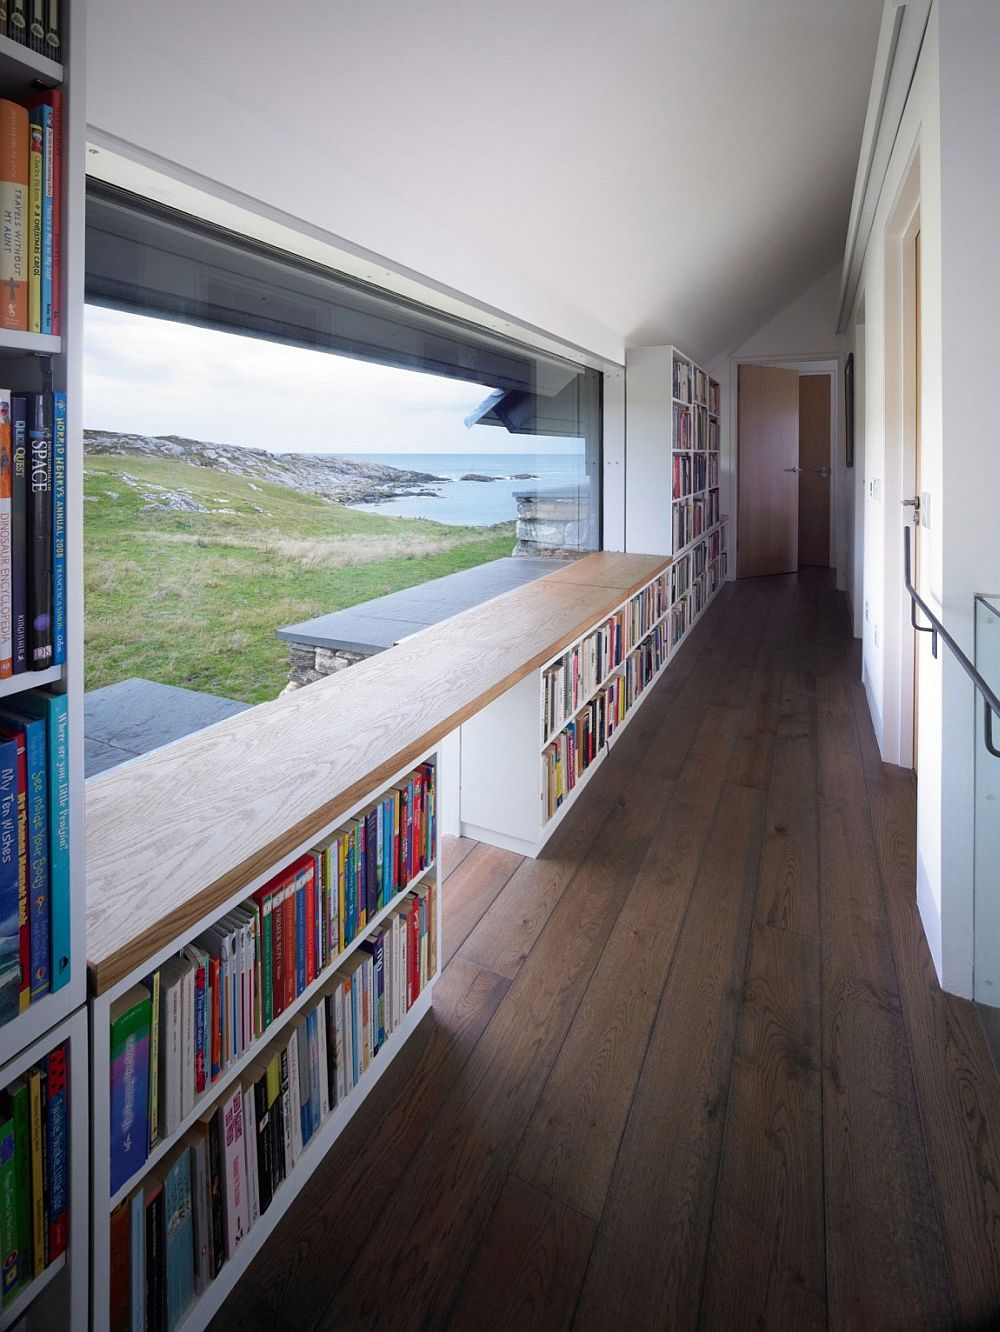 Exquisite ocean view from the top level of the home in Grishipoll, Isle of Coll, Argyll and Bute